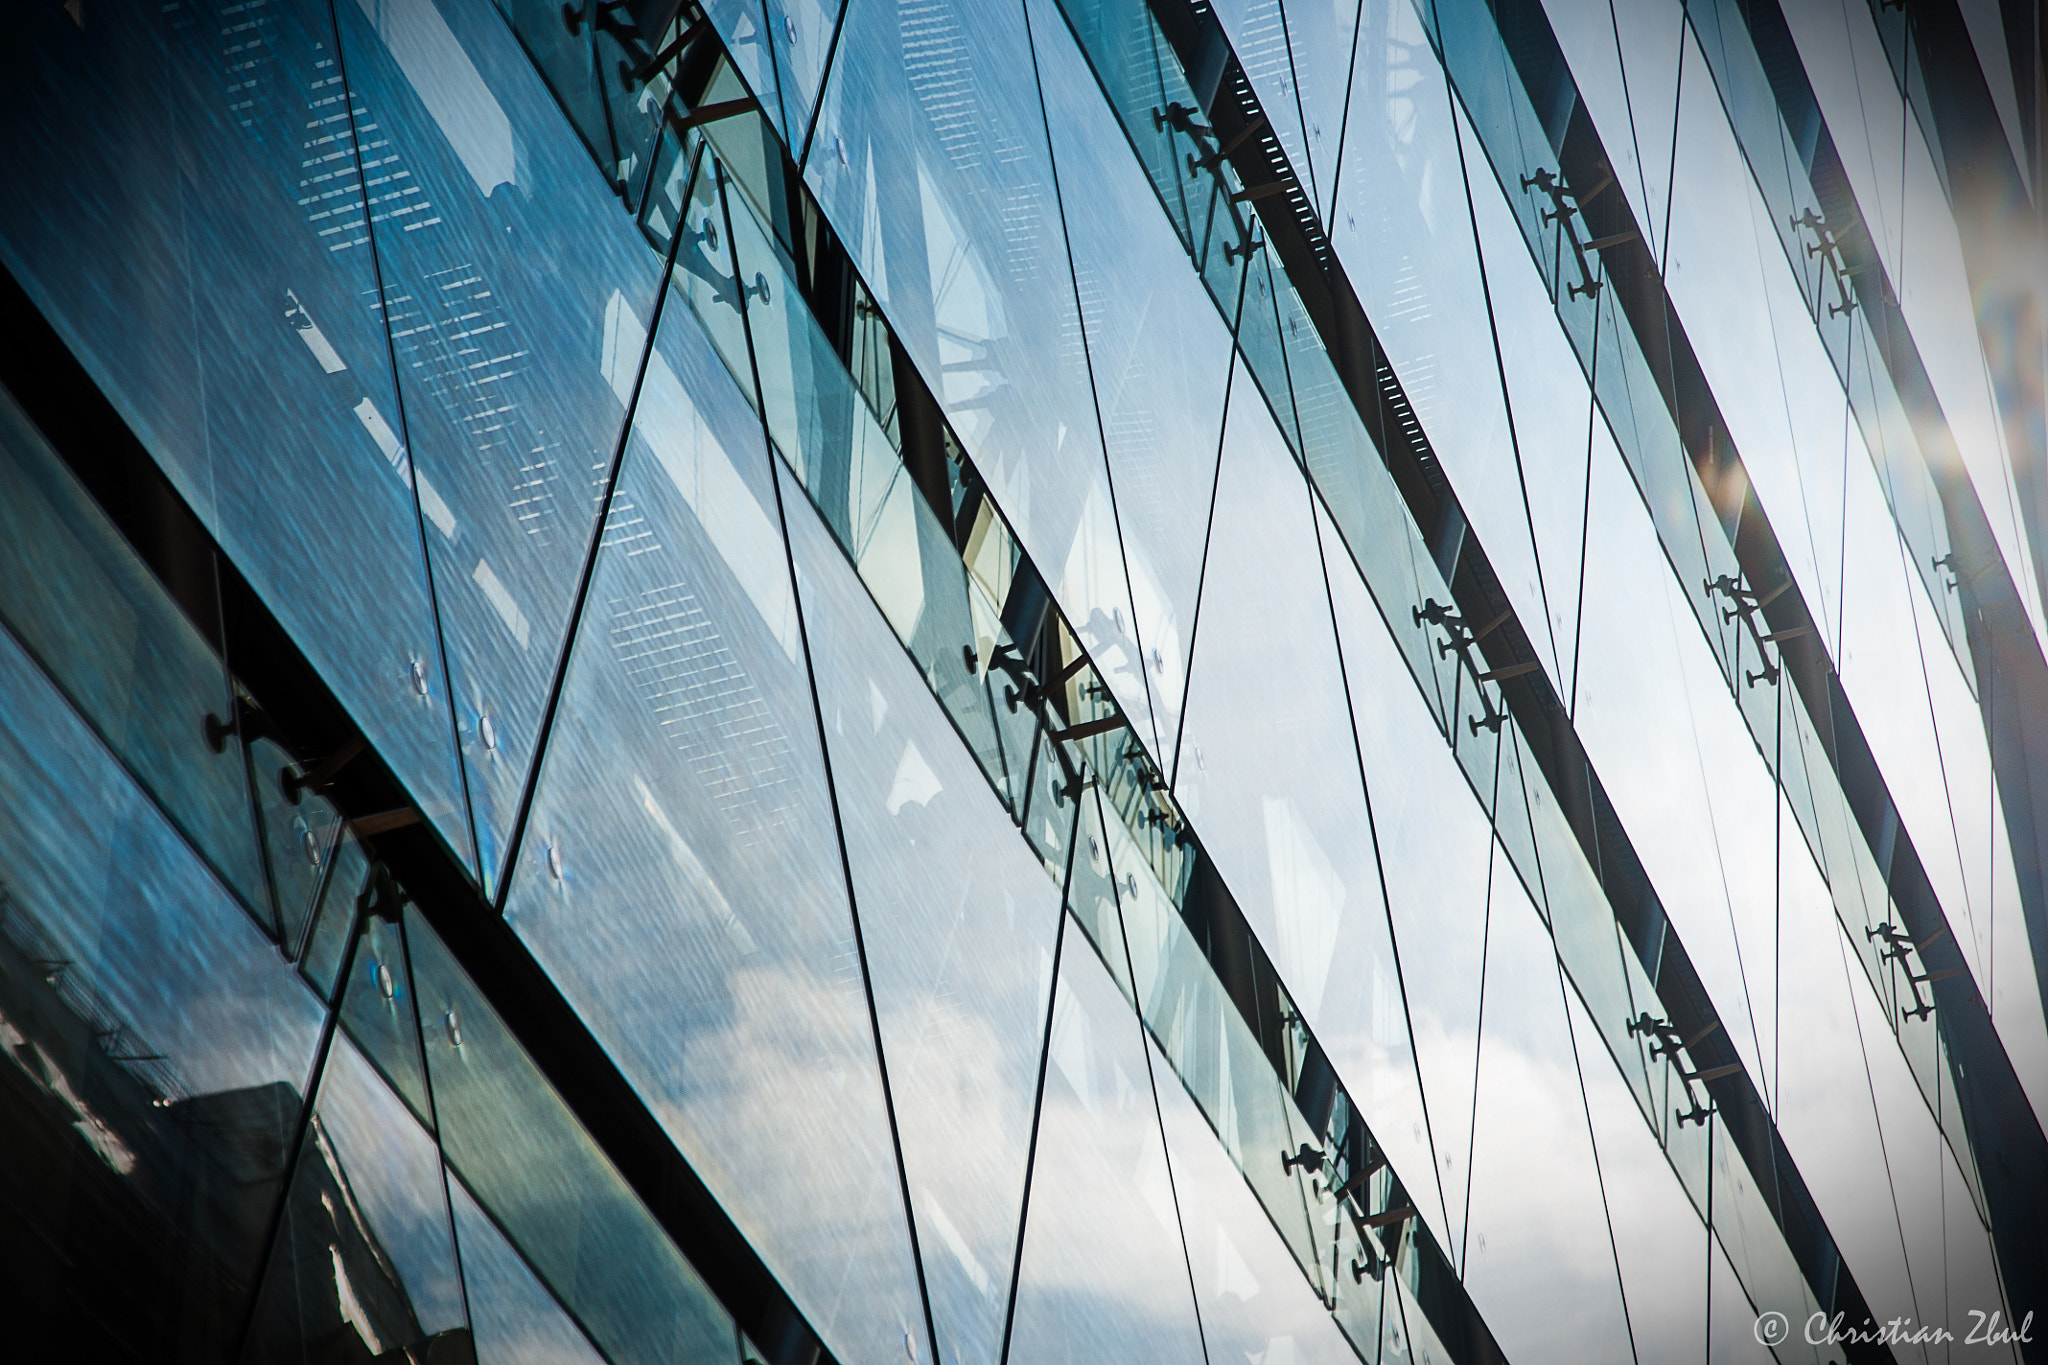 Photograph The glass facade! by Christian Zbul  on 500px